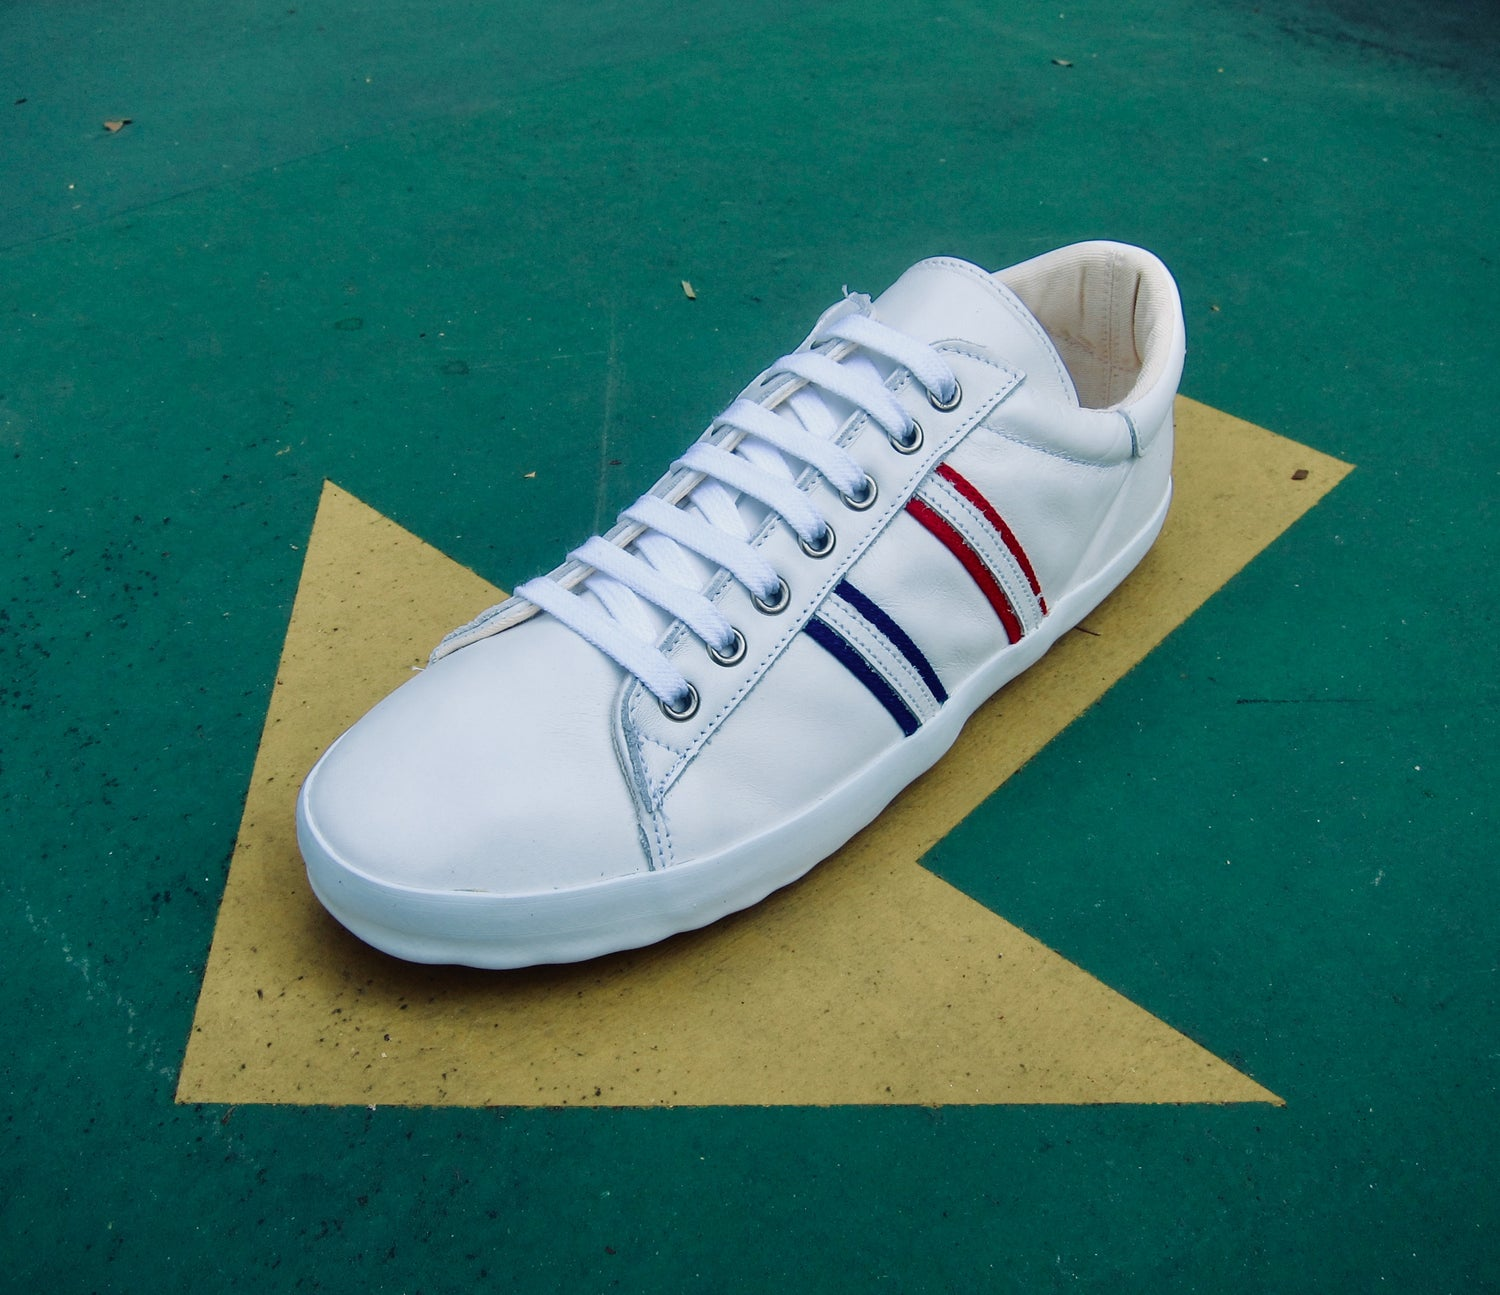 Image of ALLX X QUARTER416 store plimsoll white leather sneaker shoes special collabo